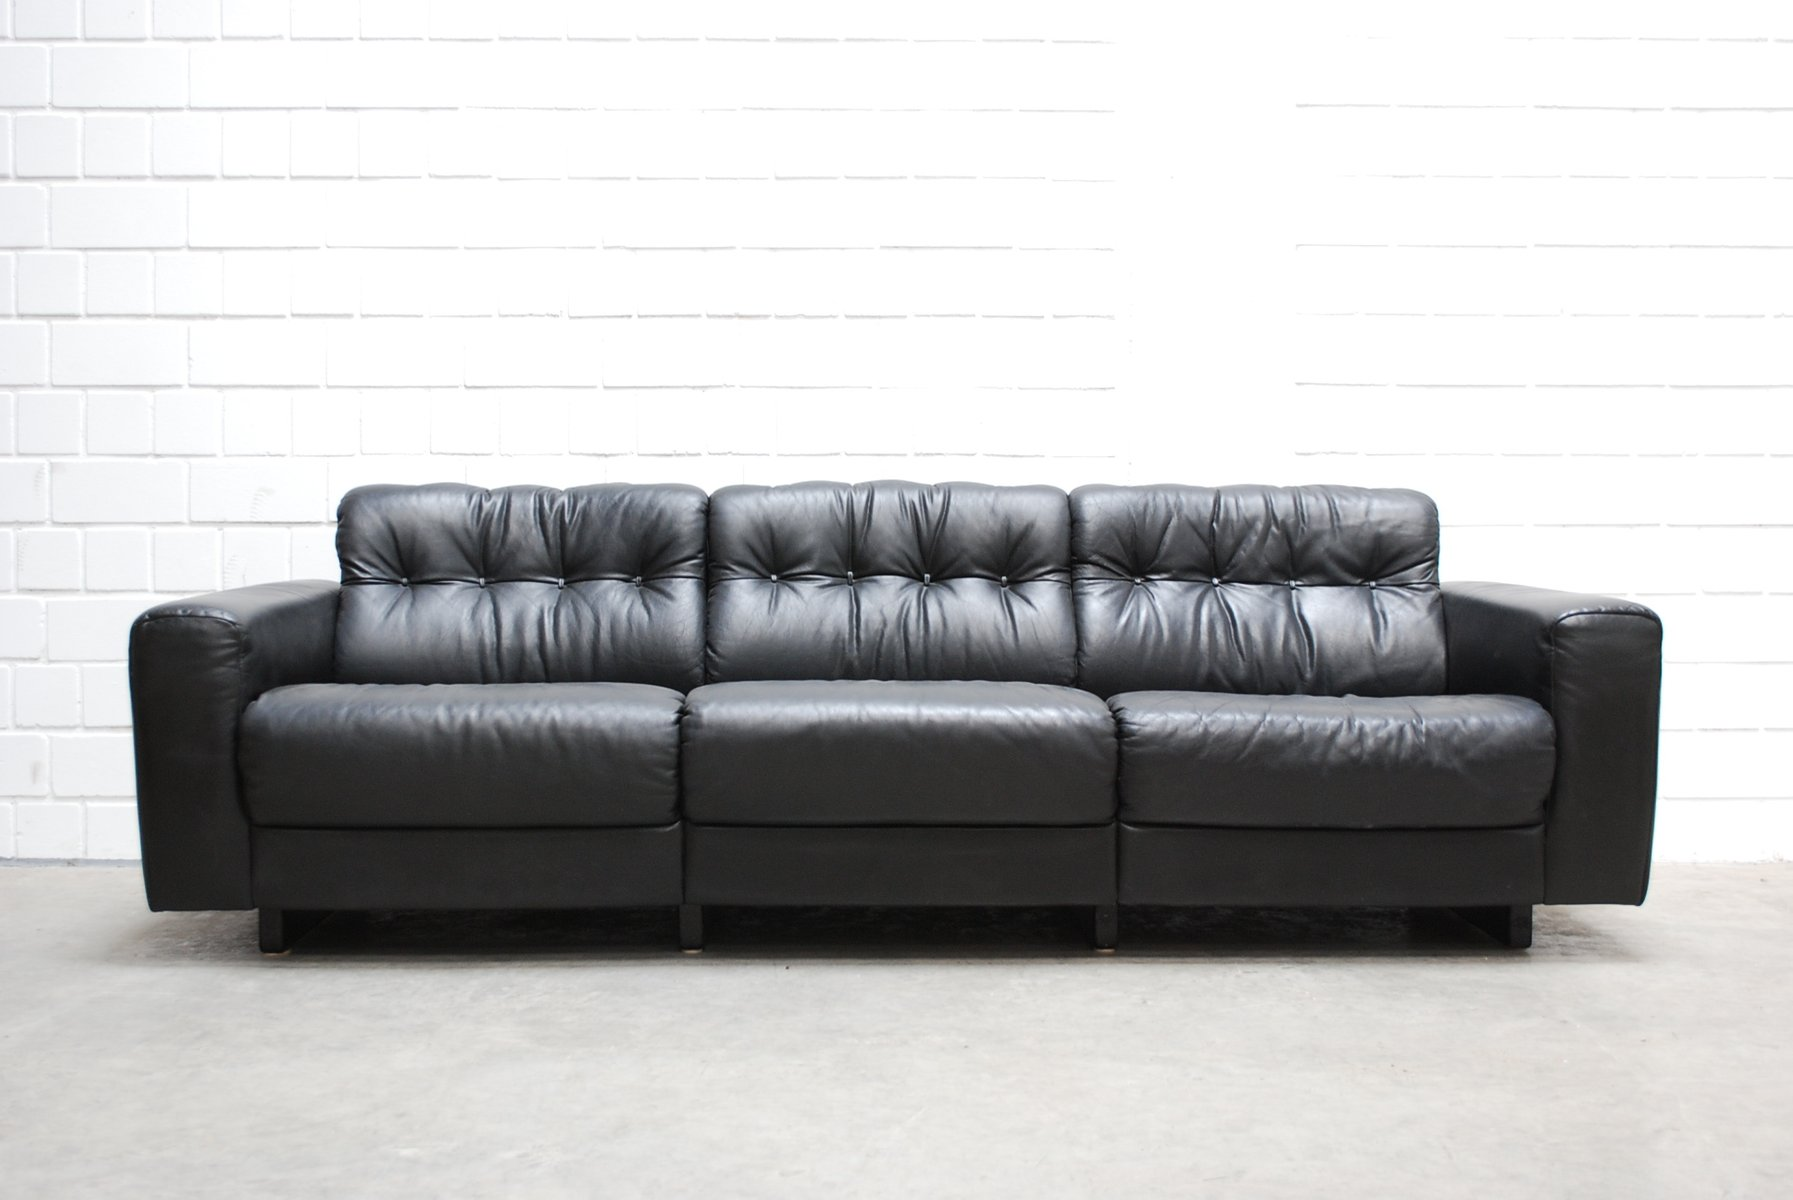 Leather Living Room Sets Ds 40 Leather Living Room Set From De Sede For Sale At Pamono